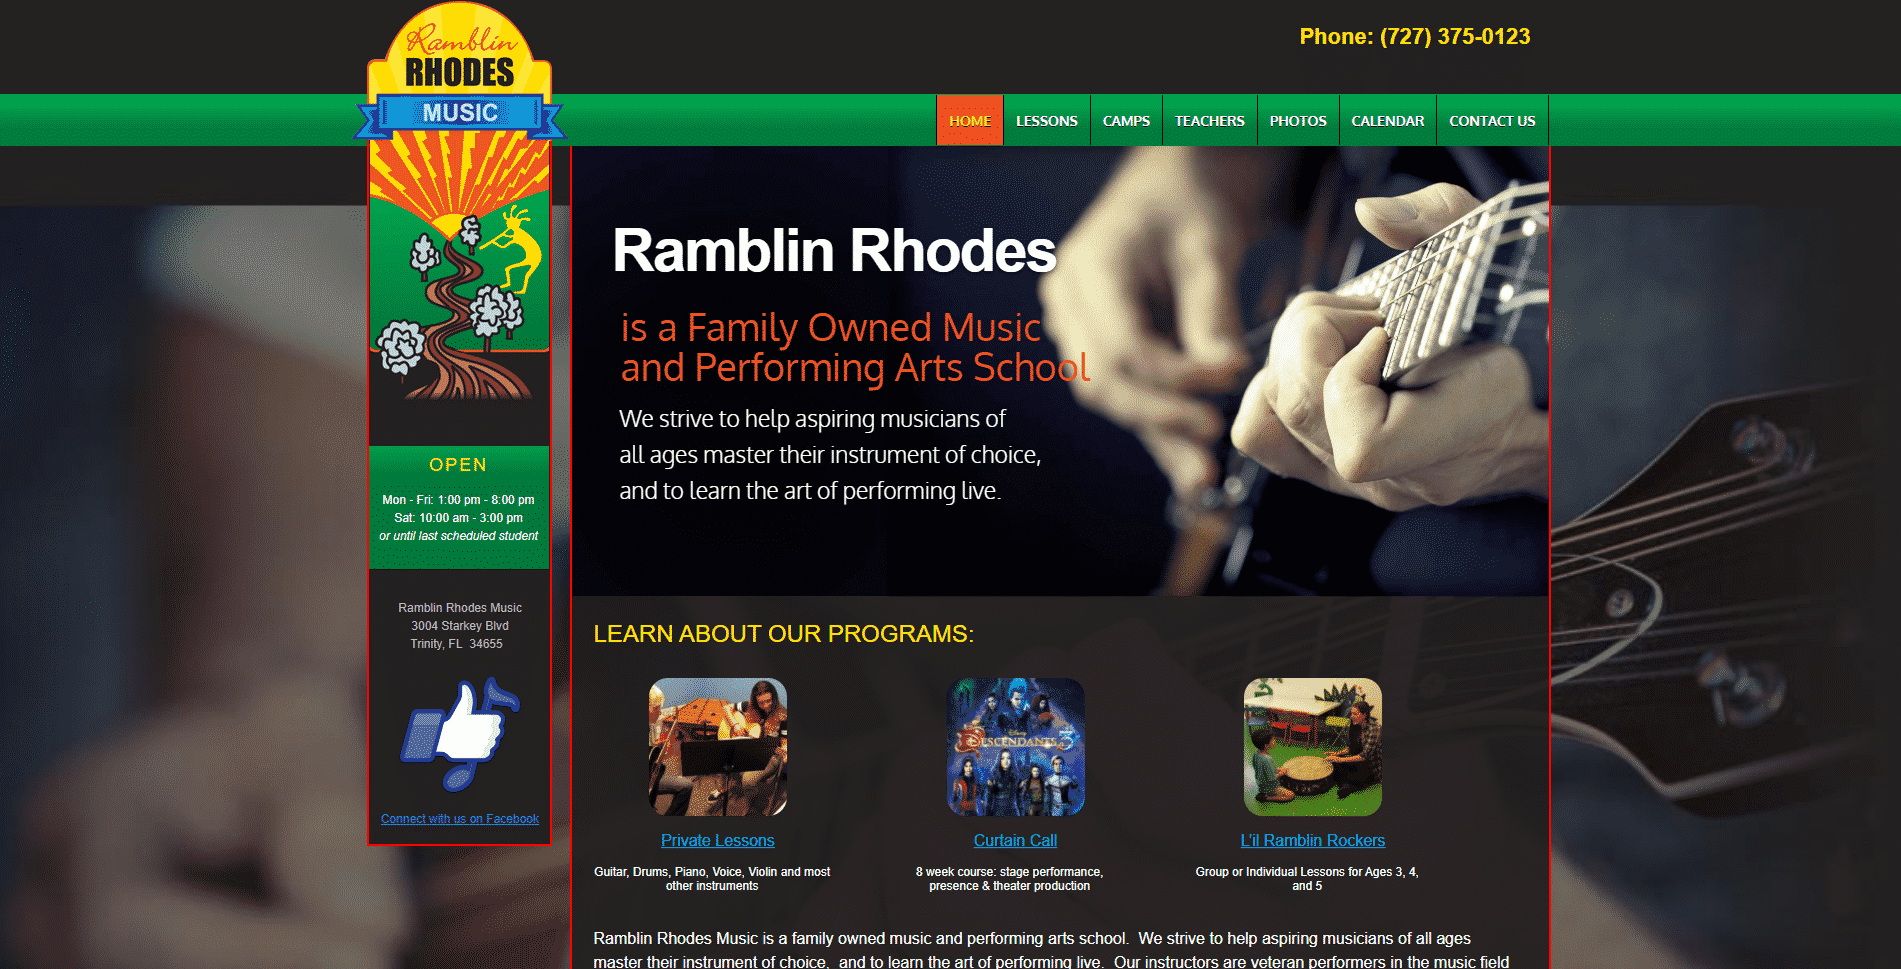 Ramblin Rhodes Music School